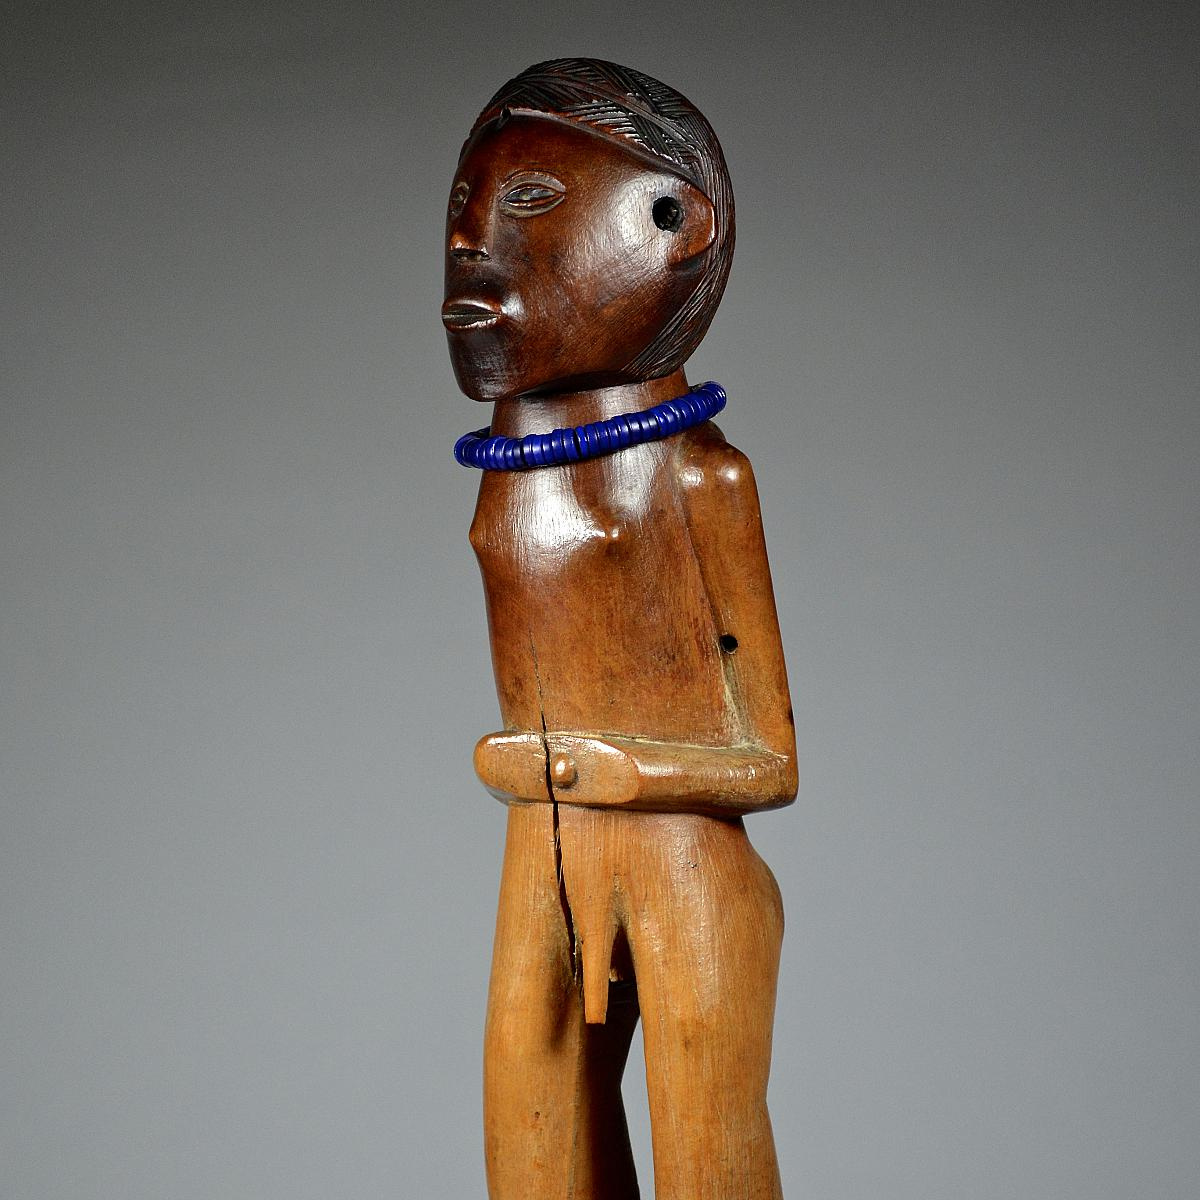 MALE STATUETTE ATTRIBUTED TO THE TABWA (Tumbwe)